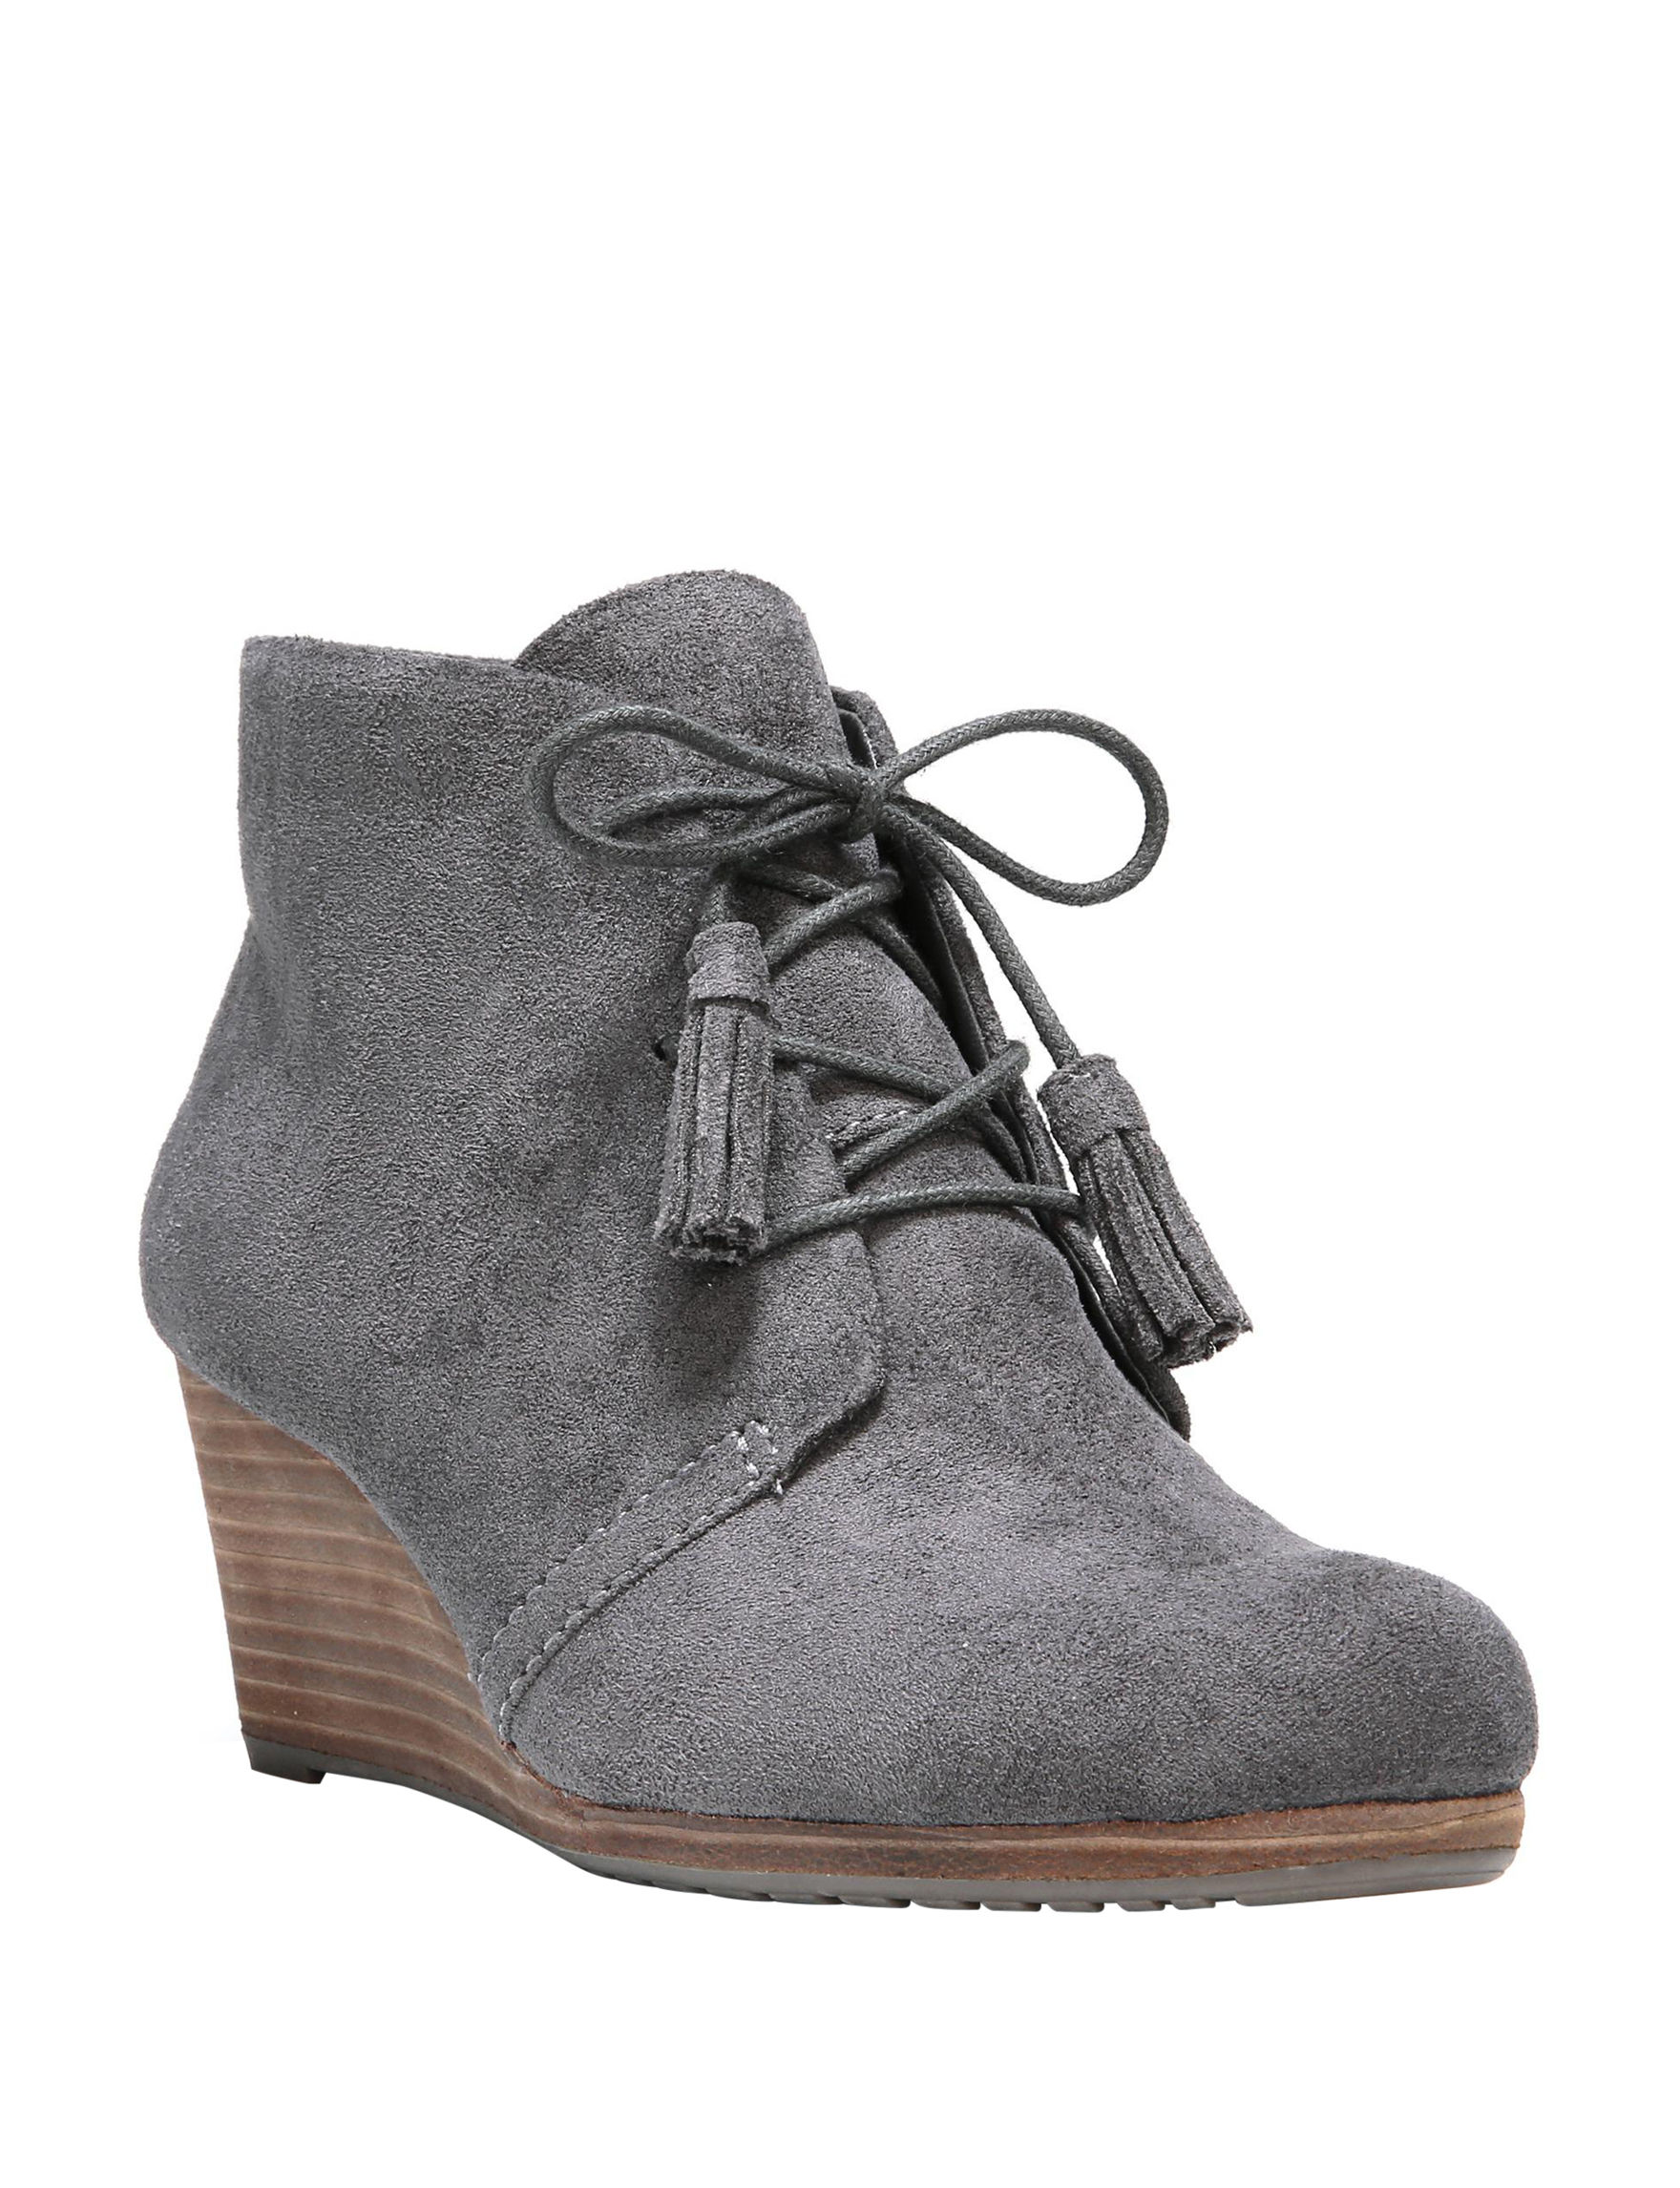 Dr. Scholl's Grey Ankle Boots & Booties Wedge Boots Comfort